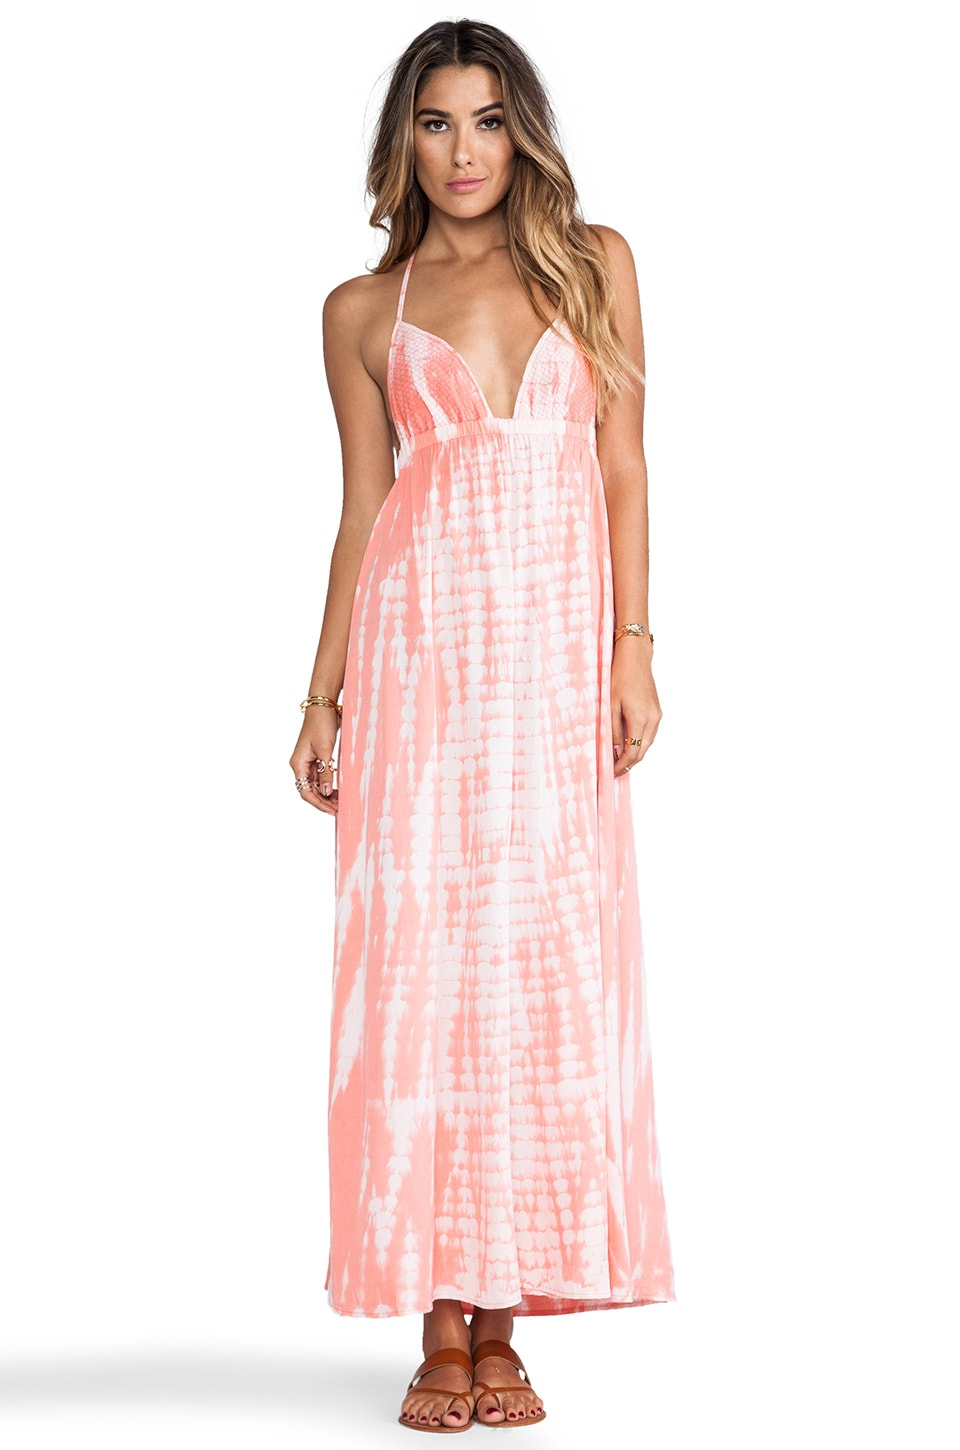 Tiare Hawaii Montevideo in Pink Tie Dye